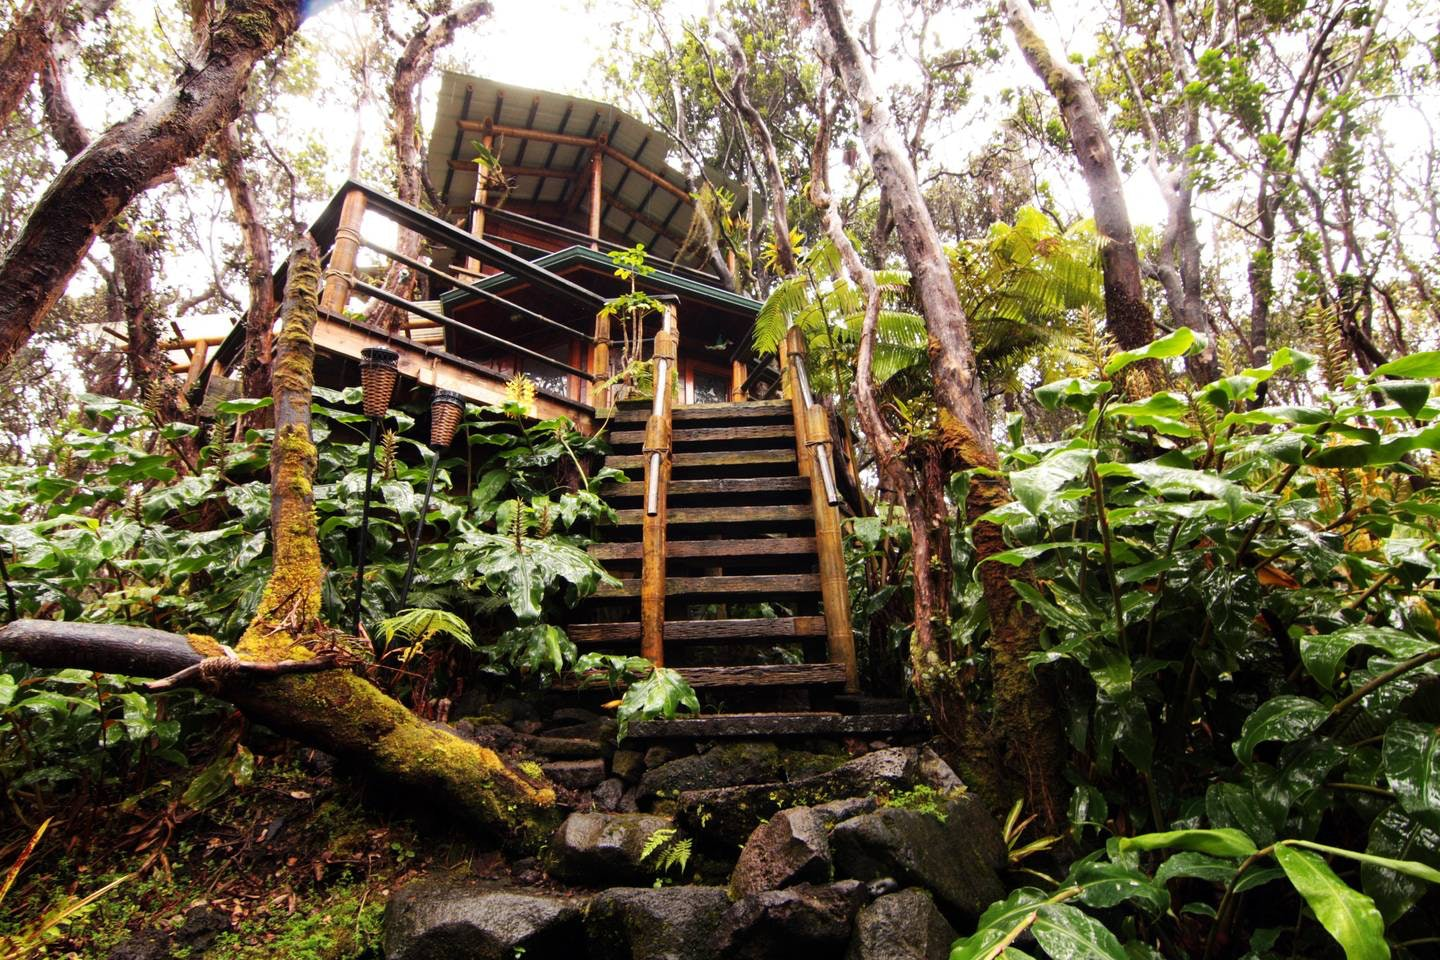 10 Amazing Treehouse Als You Can Find On Airbnb From Montana To Bali